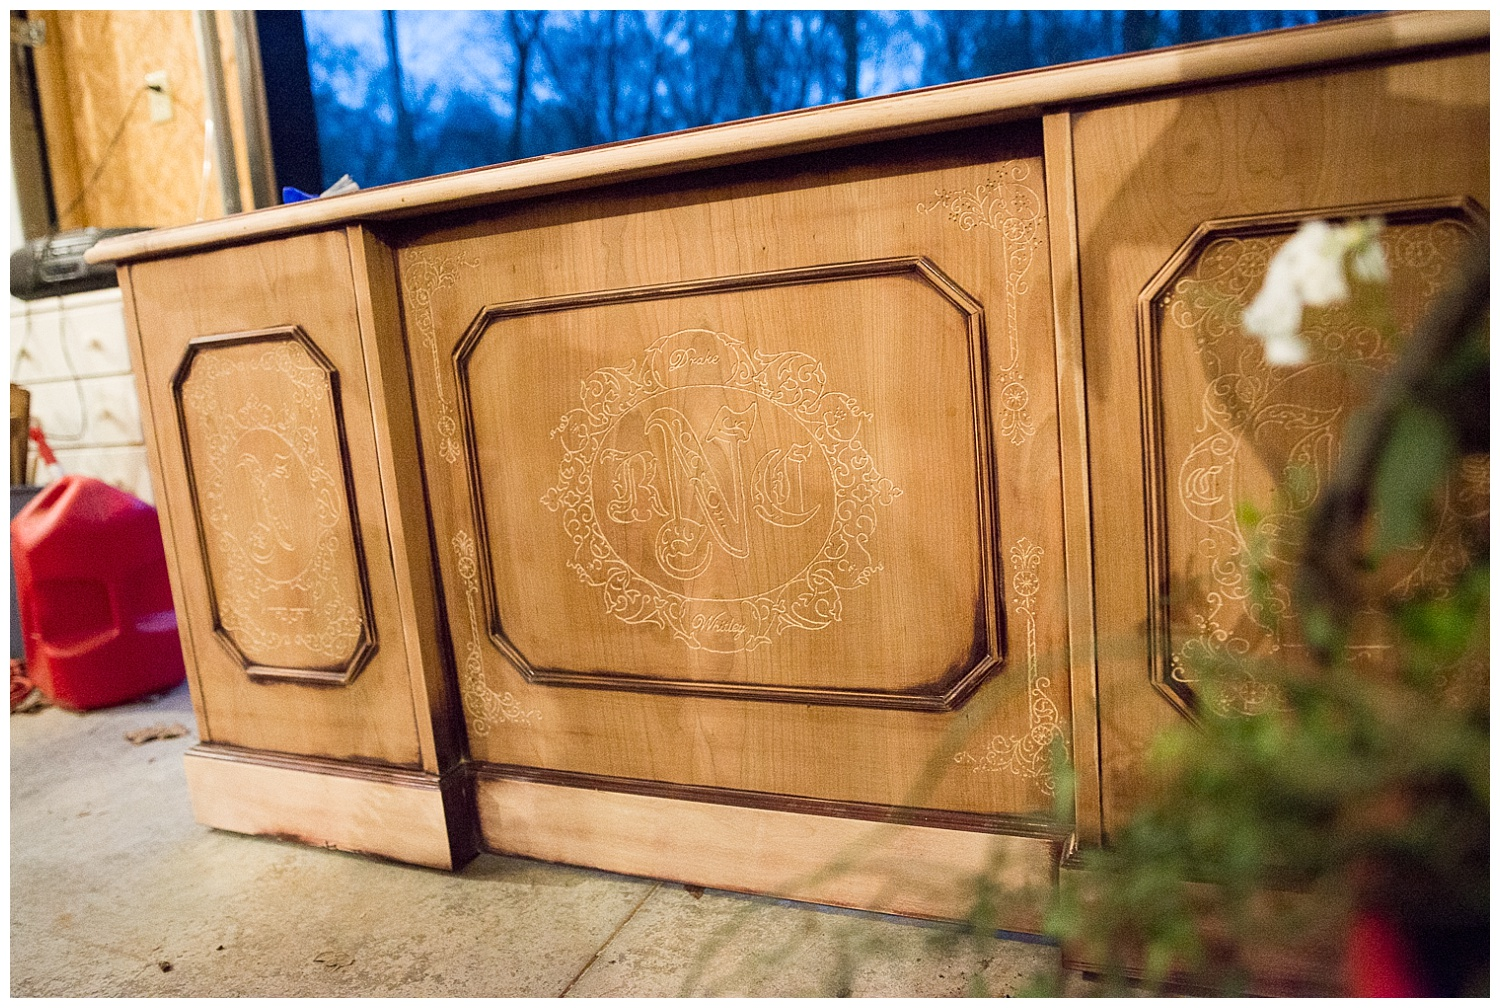 Chandra showed us this piece in the garage. Carving meaning into this executive desk is Ray's current project and he's busy carving the family tree into the sides of it.